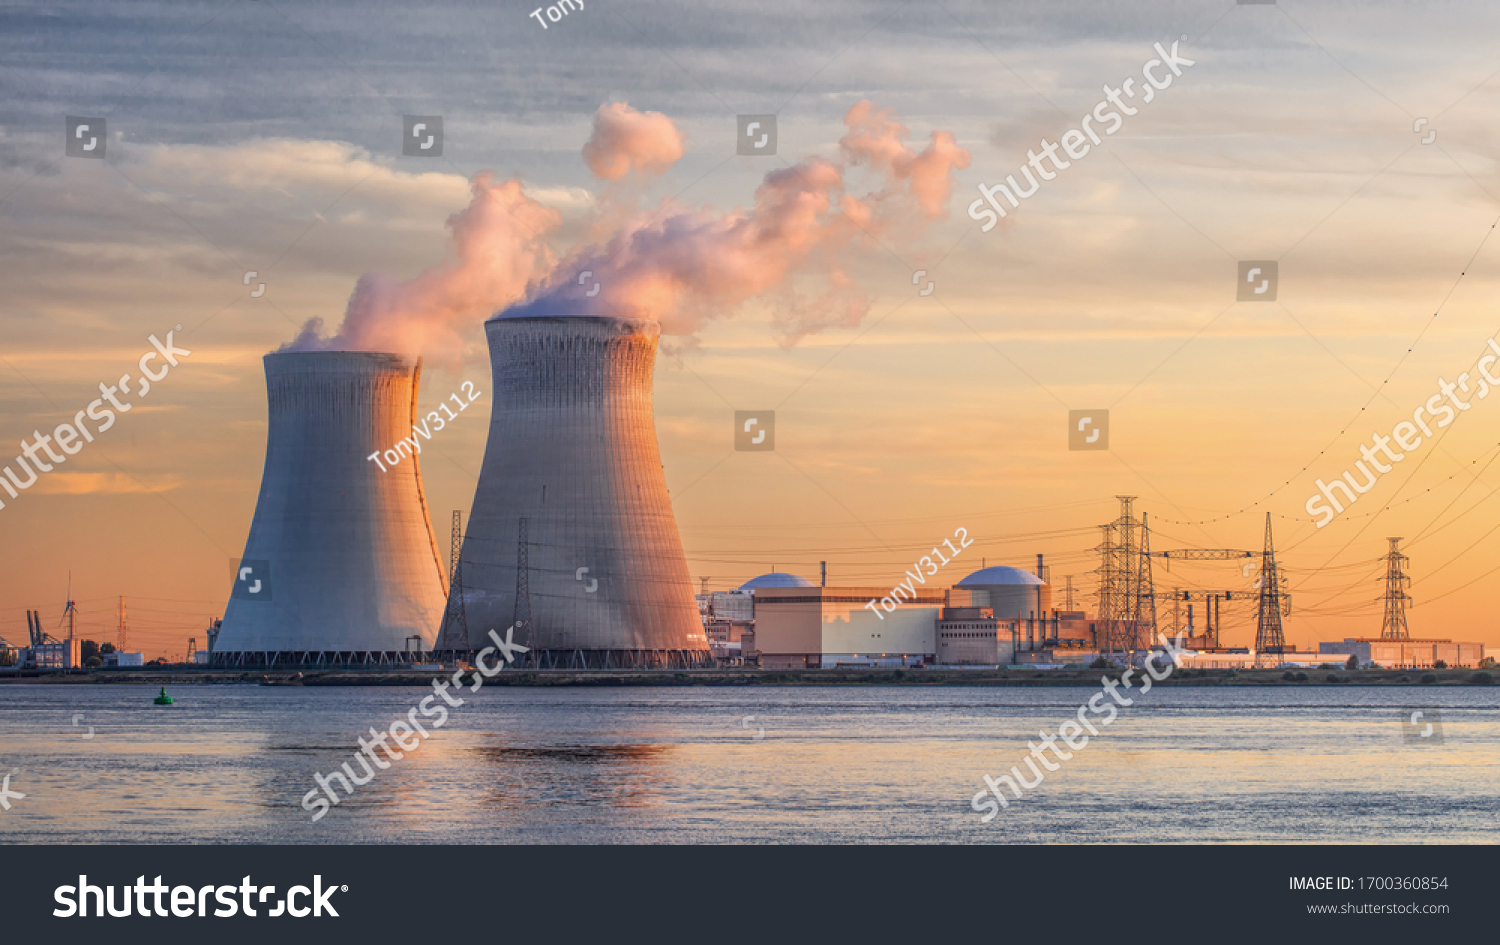 Late afternoon scene with view on riverbank with nuclear reactor Doel, Port of Antwerp, Belgium. #1700360854